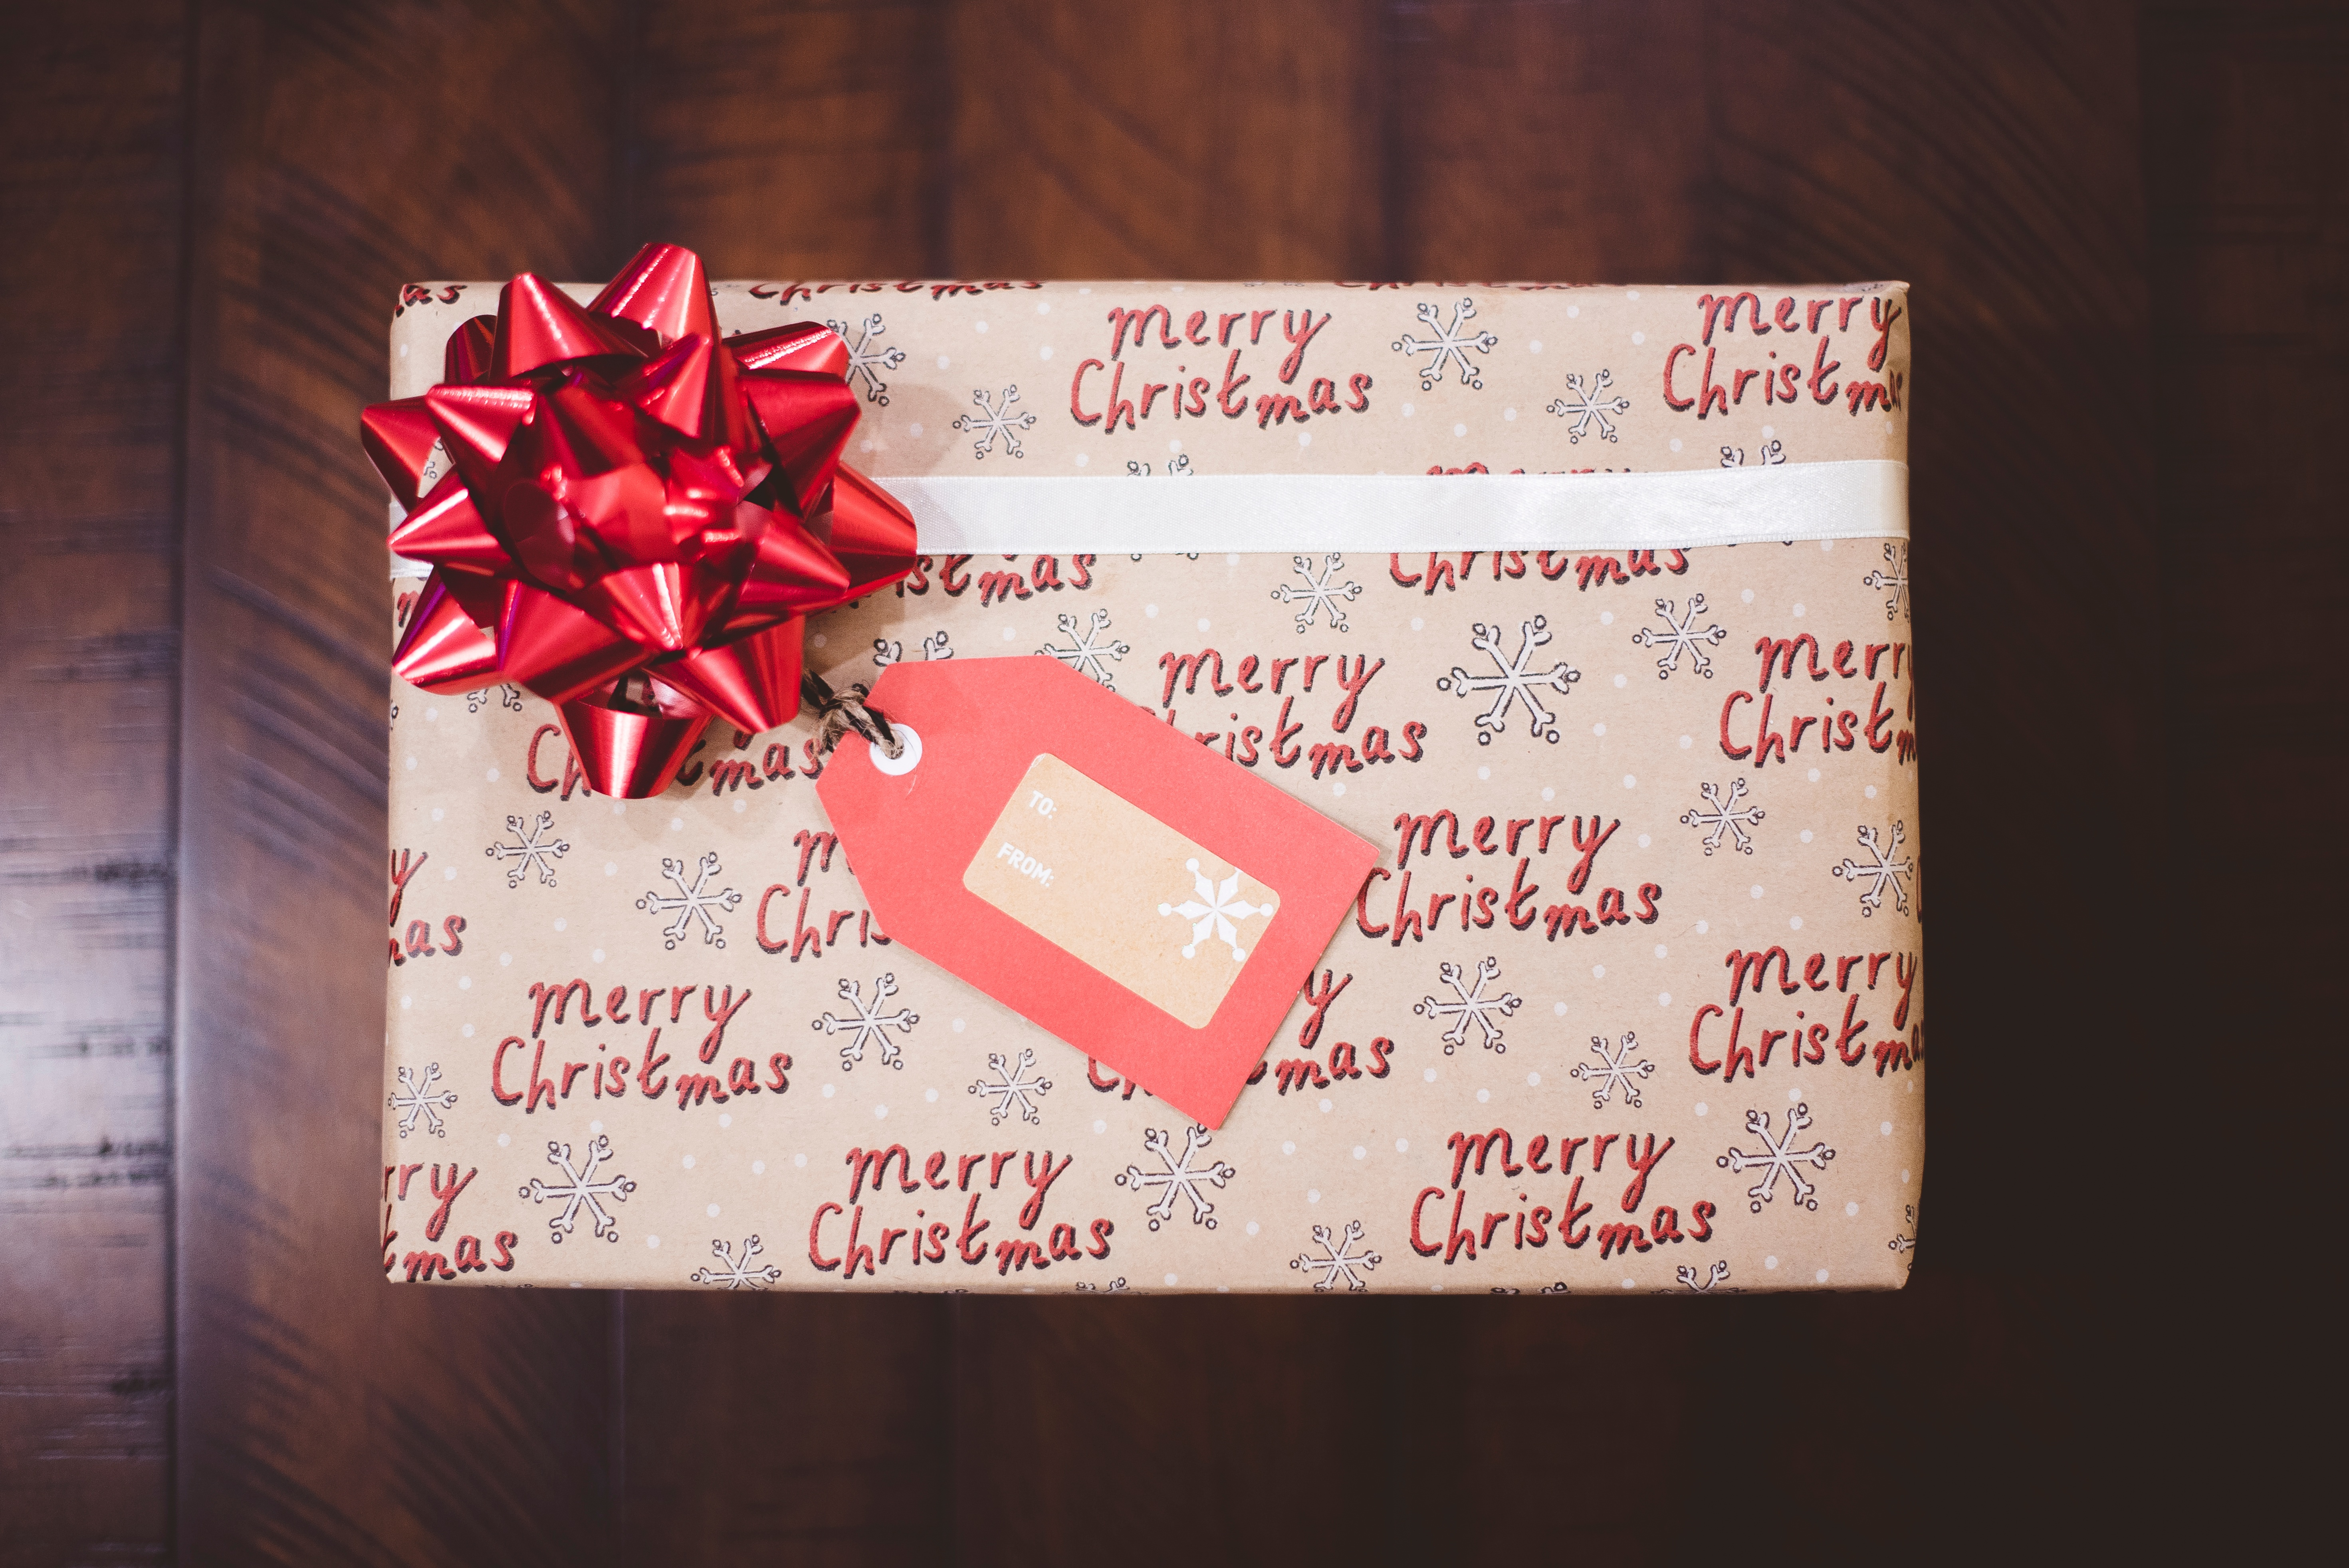 10 Ideas for Christmas Gifts